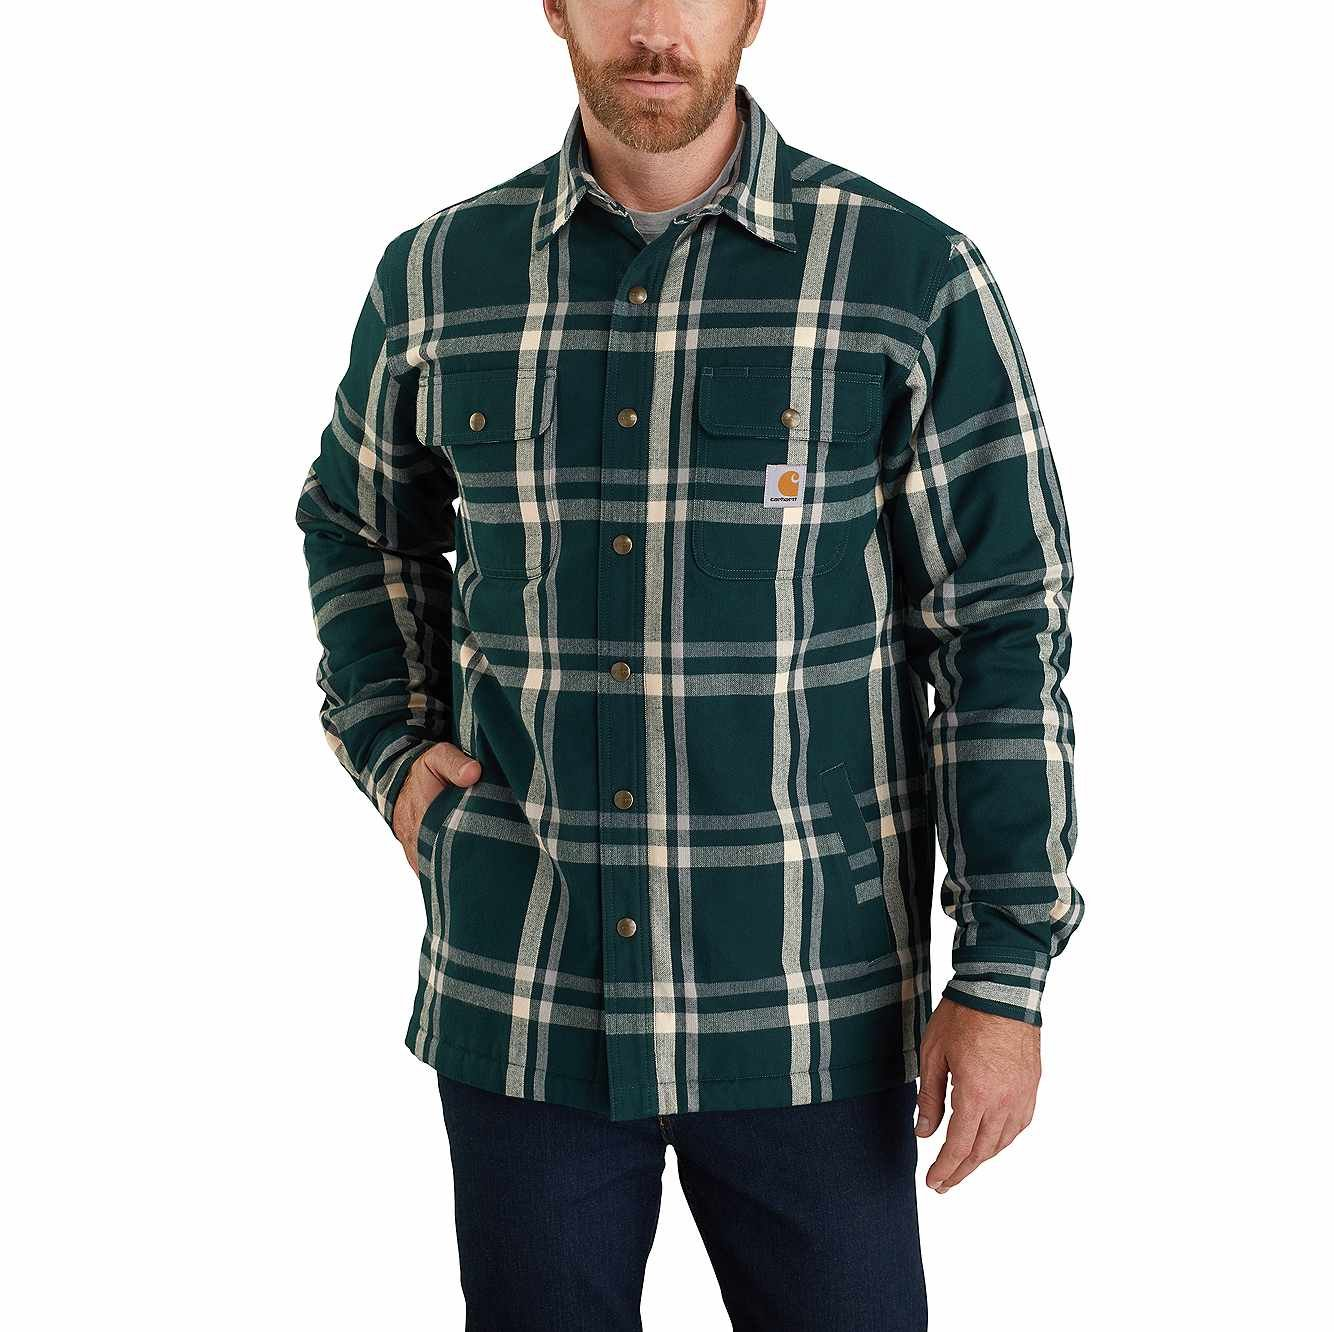 M's Carhartt Sherpa Lined Snap Front Plaid Shirt Jac 104452 Teal